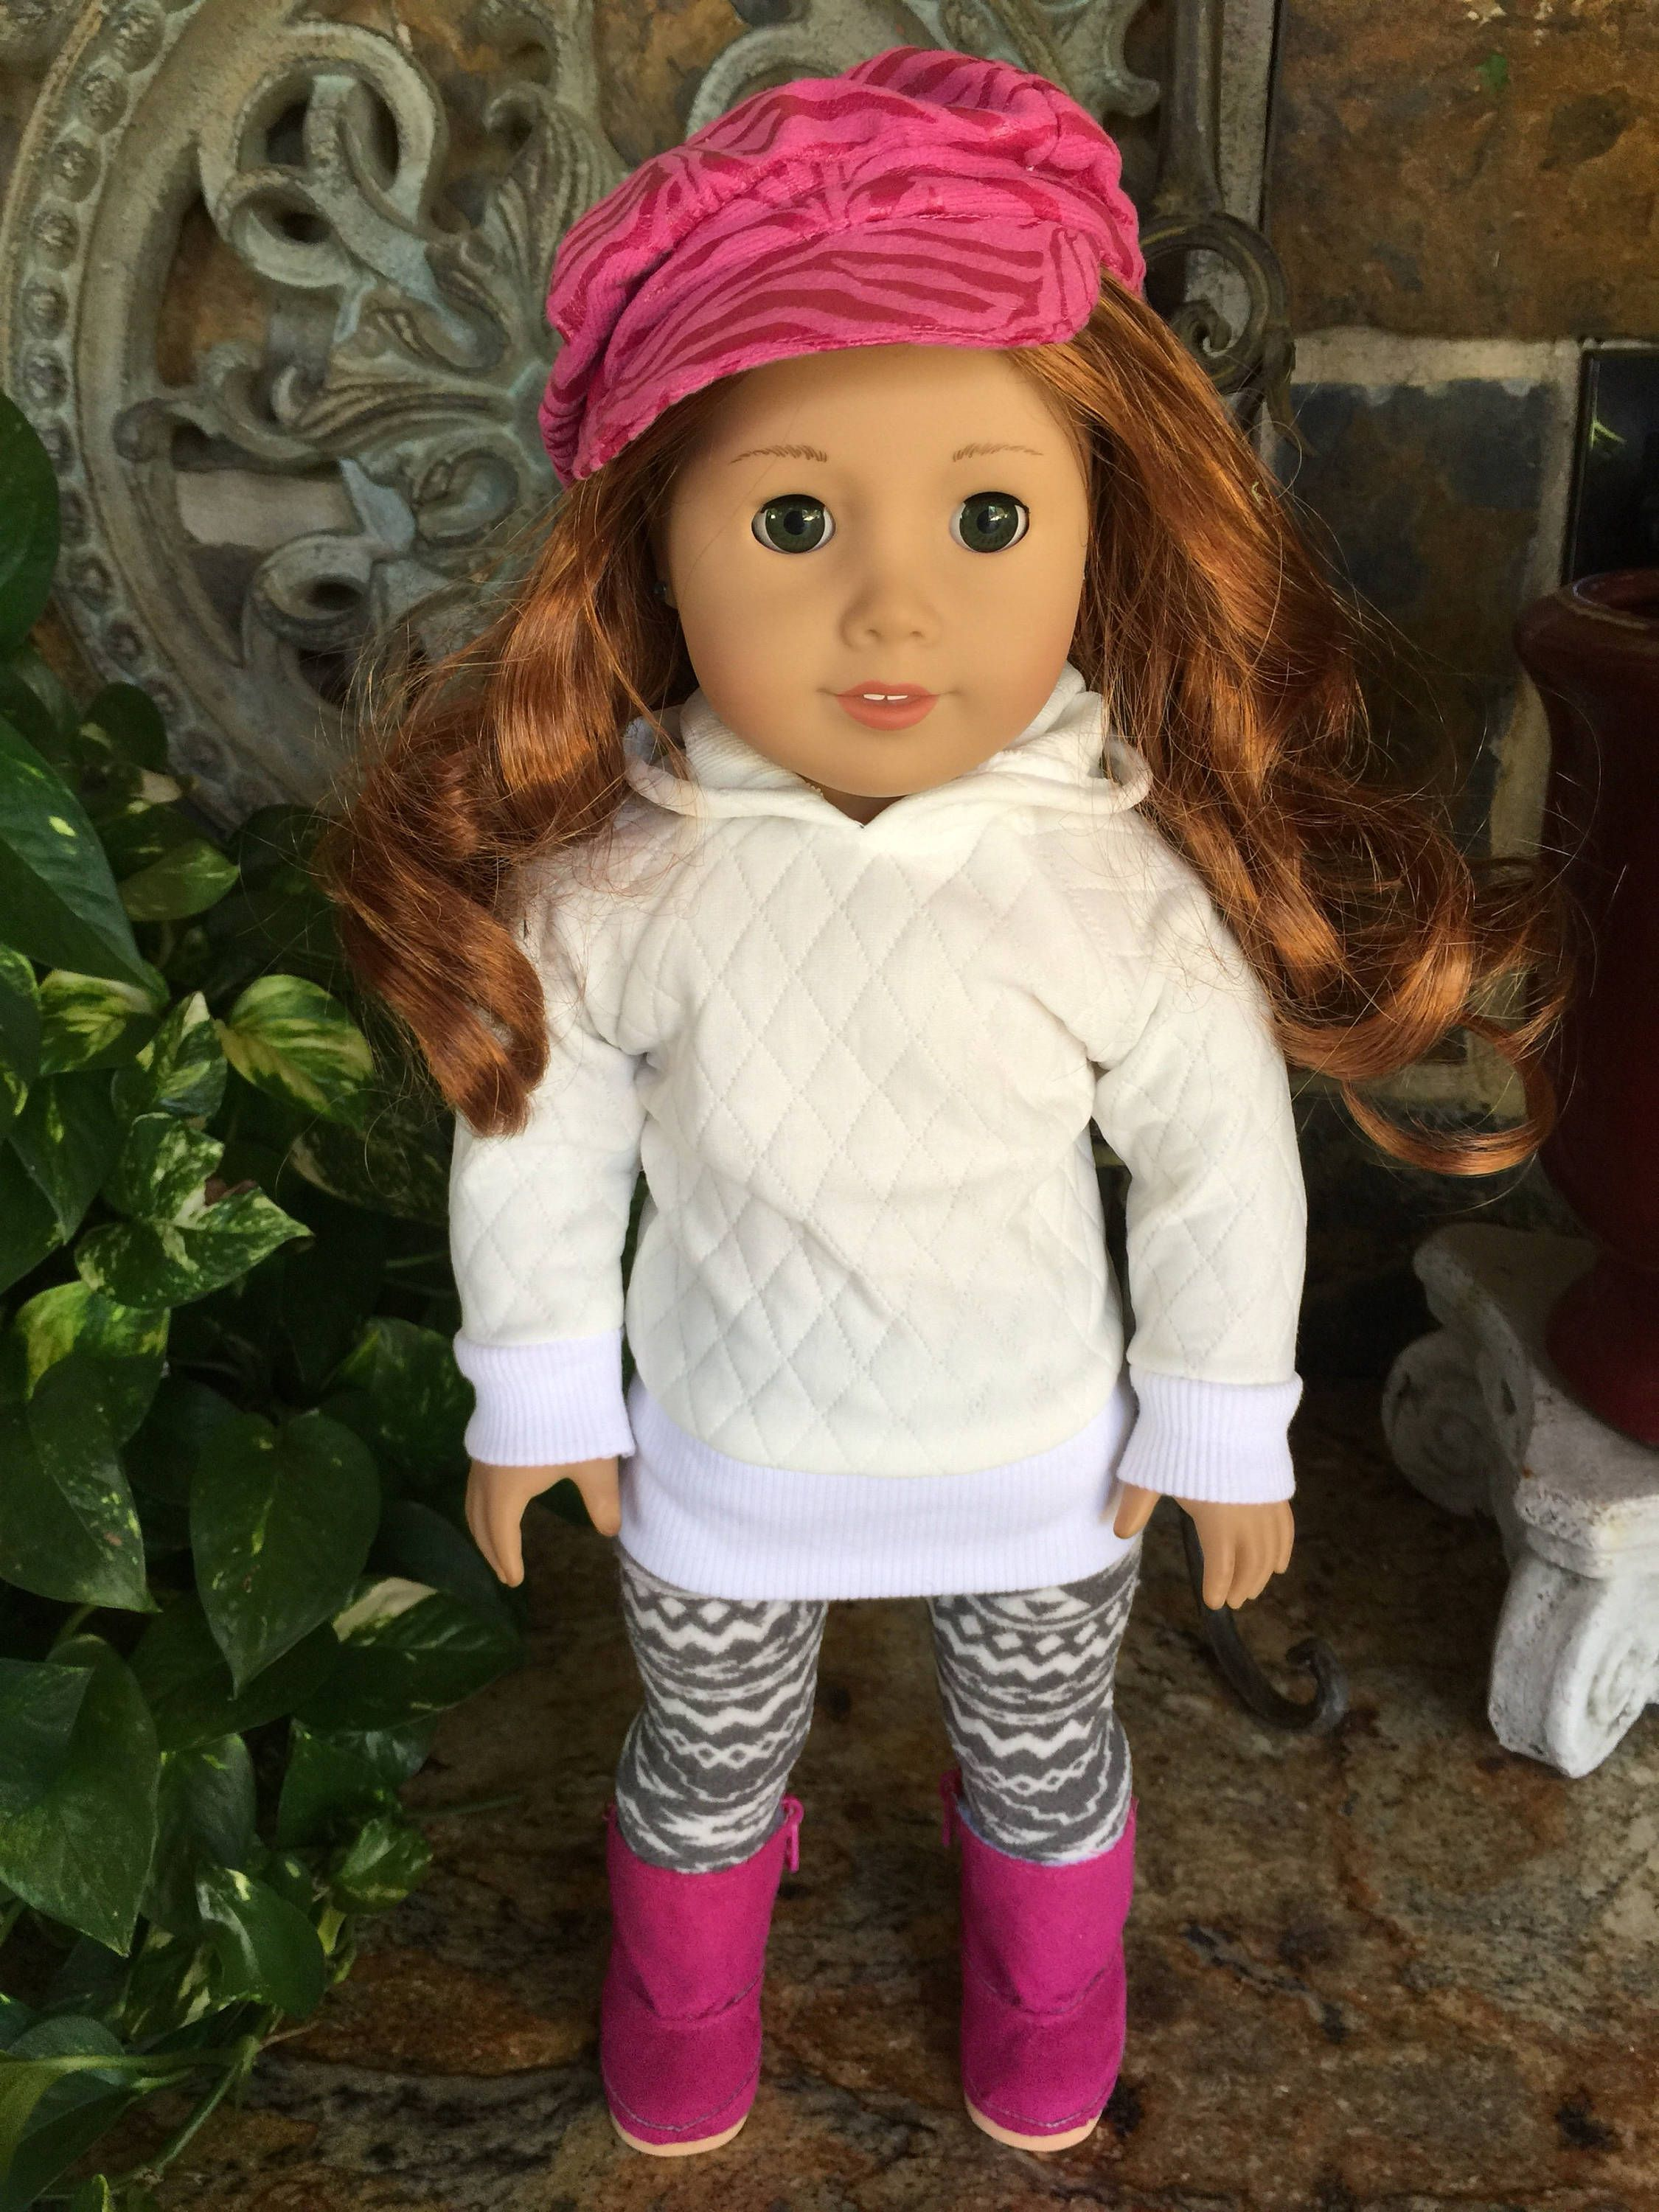 07d29027407a8 18 inch handmade doll clothes designed to fit the American girl doll-quilte  off white tunic top-striped grey and white leggings by lollipaisley on Etsy